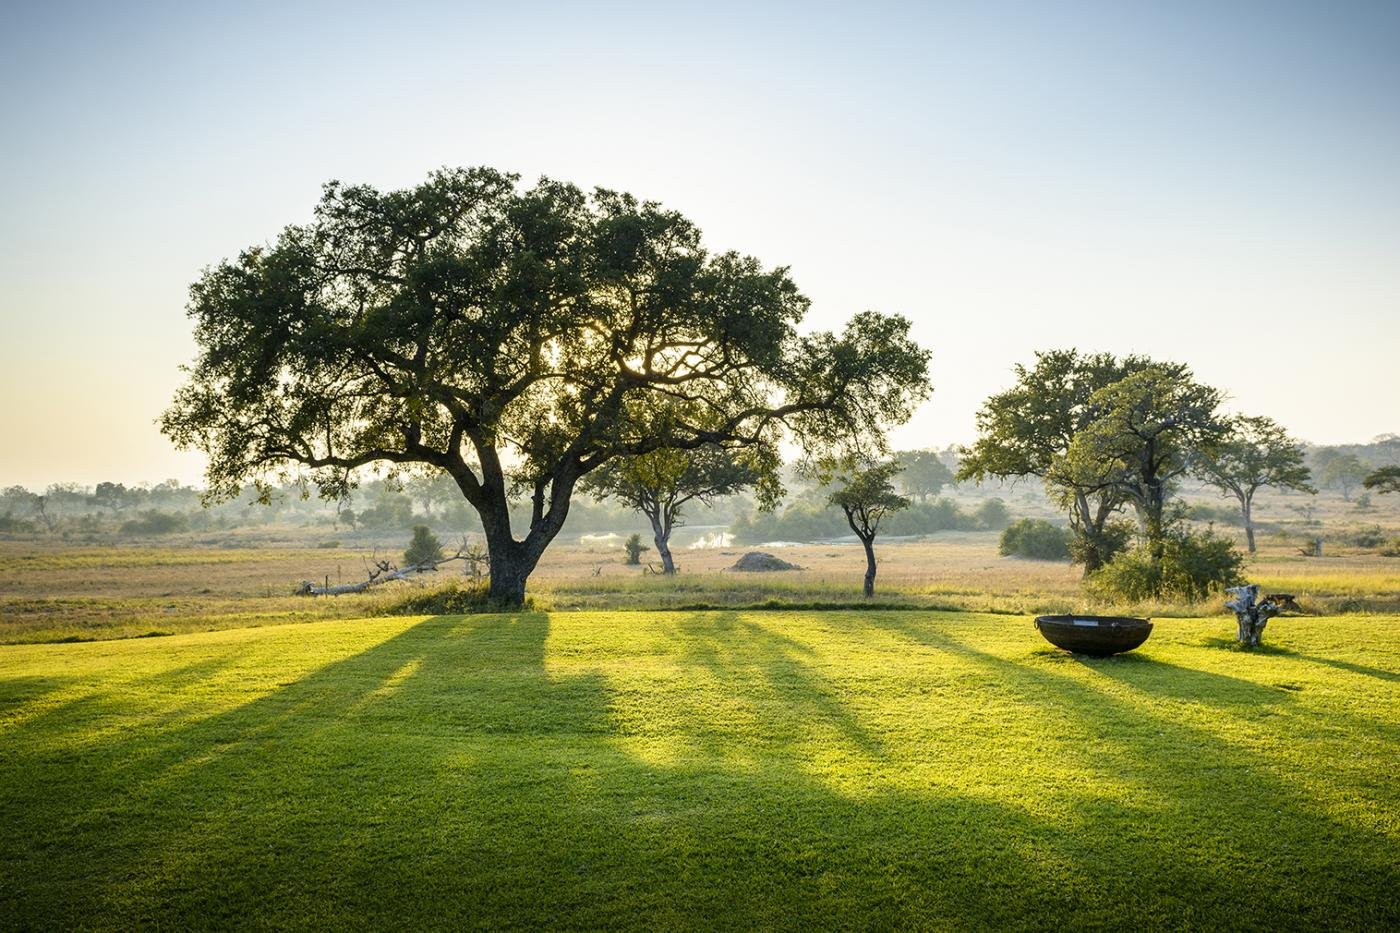 With stunning views of the South African landscape, Singita Castleton will leave you speechless.